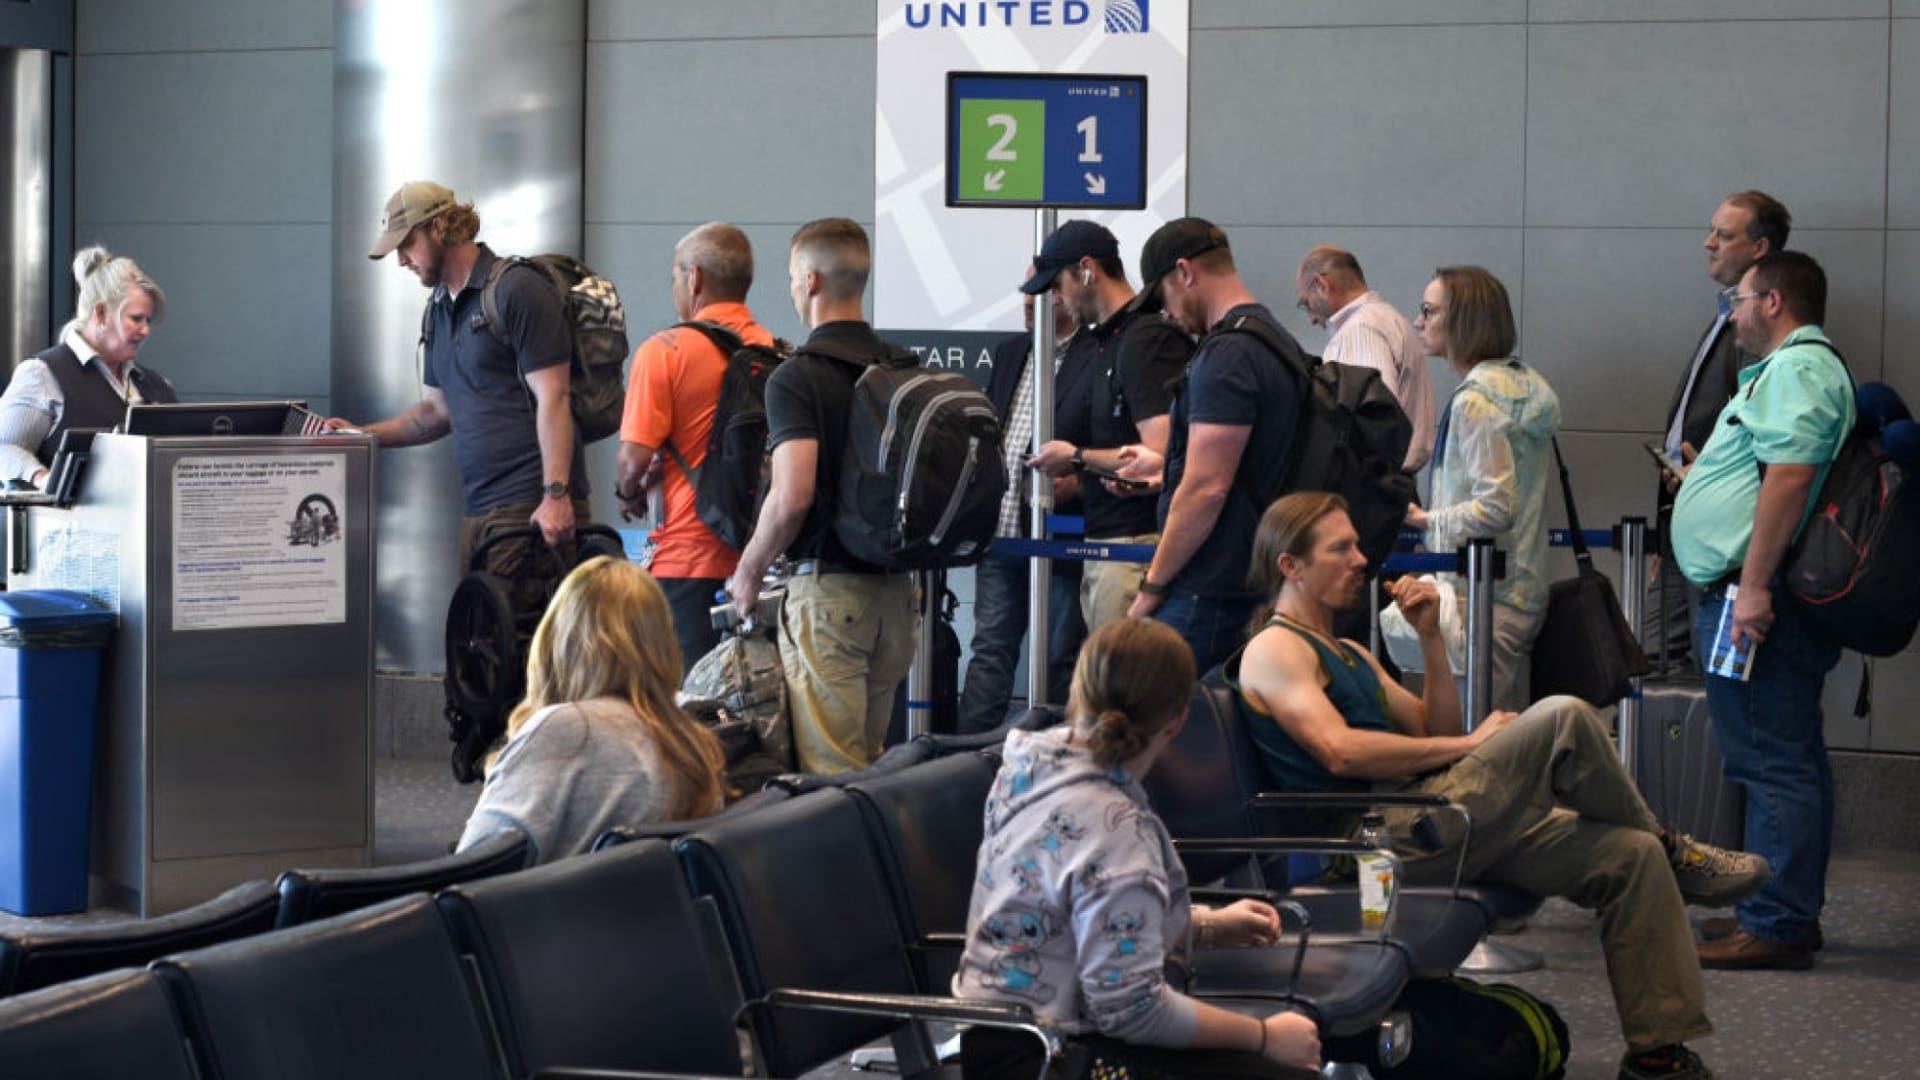 United and Delta Tried a Simple Change to Make Travel Safer. What They Got Wrong